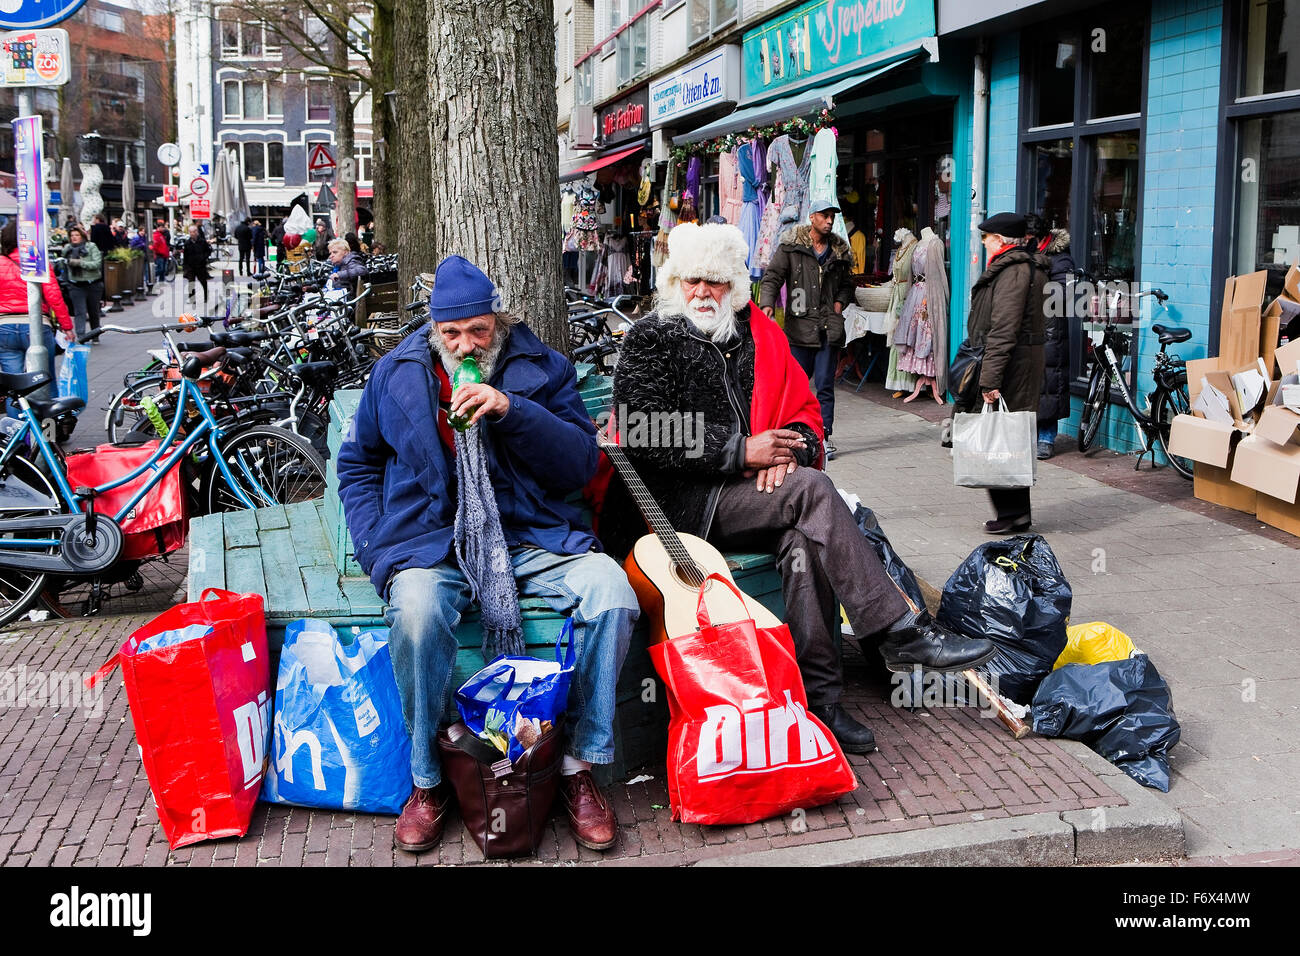 two Tramps sitting on a bench in a Amsterdam street - Stock Image